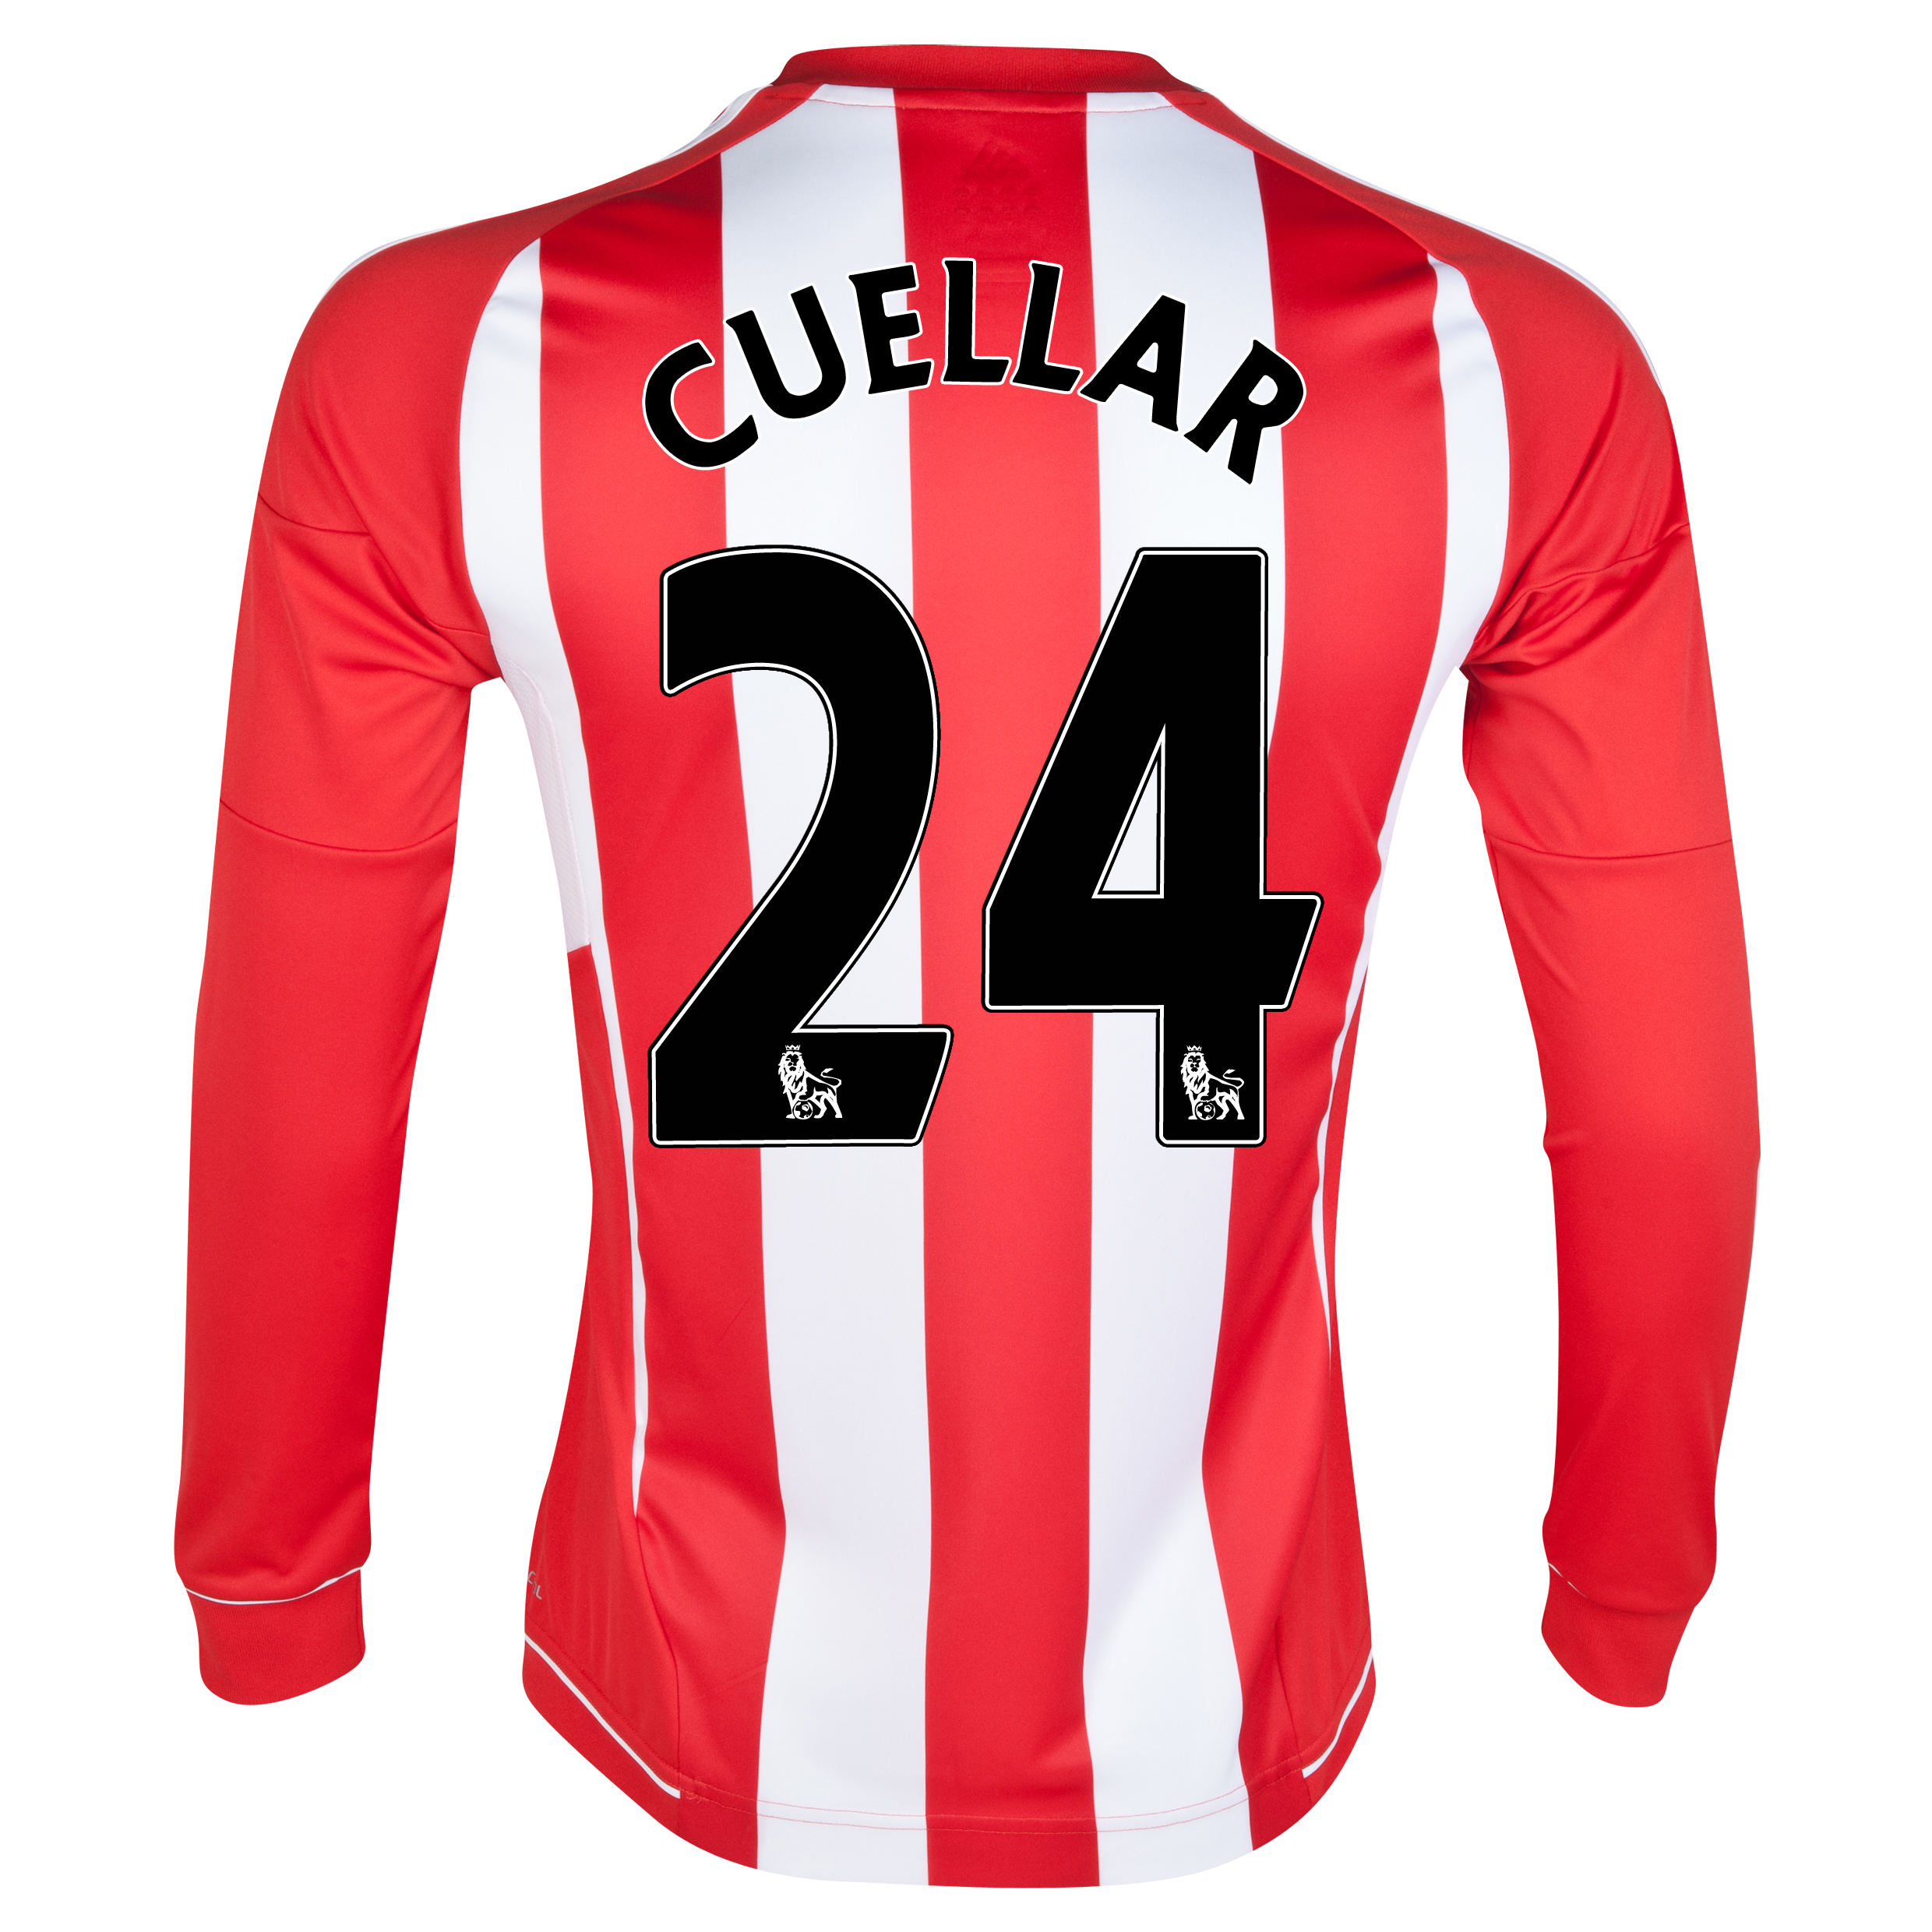 Sunderland Home Shirt 2012/13 - Long Sleeved - Junior with Cuellar 24 printing